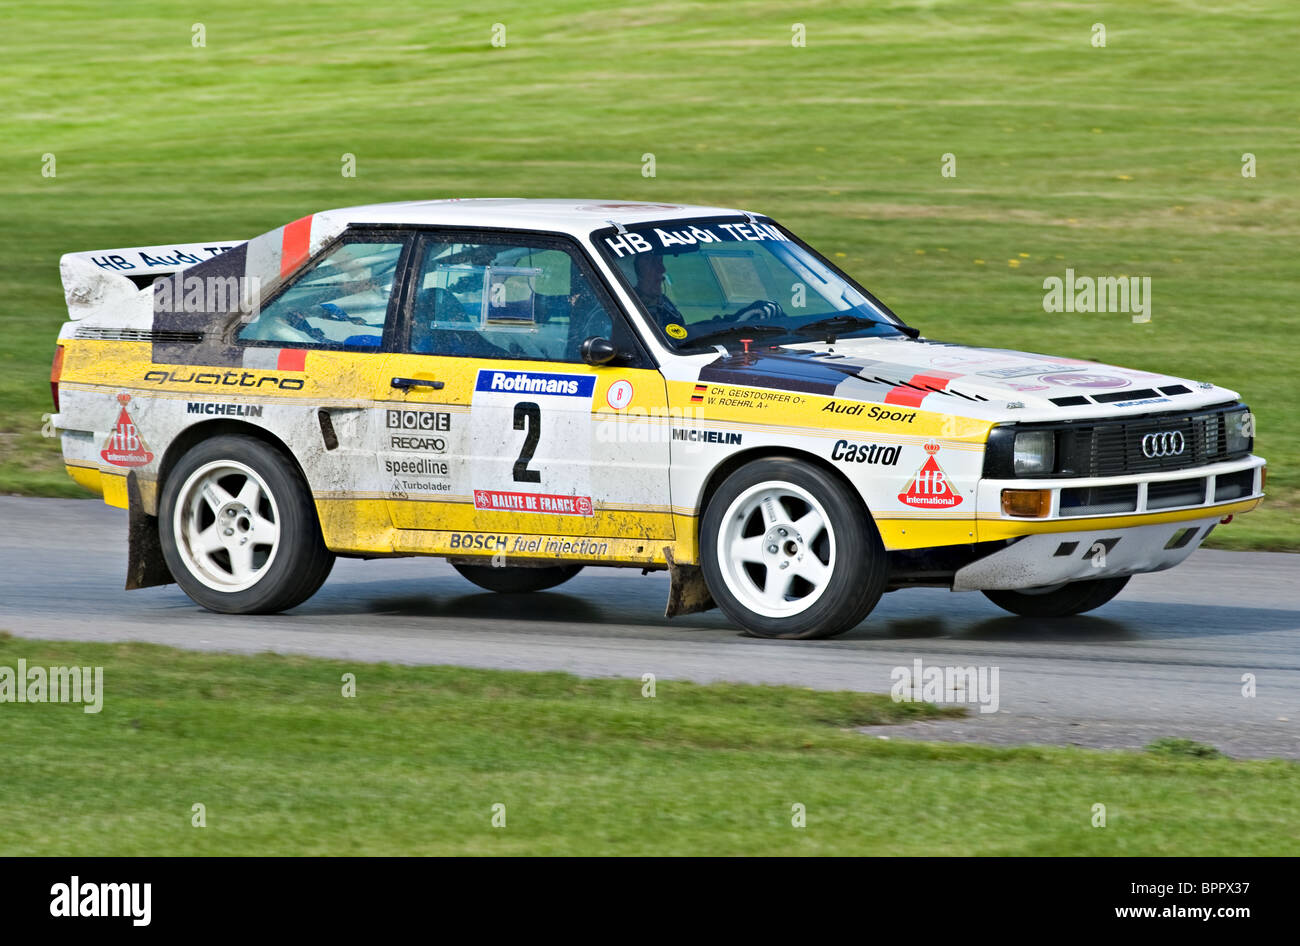 Audi Quattro Group B Historic Rally Car on Track at Oulton Park ...